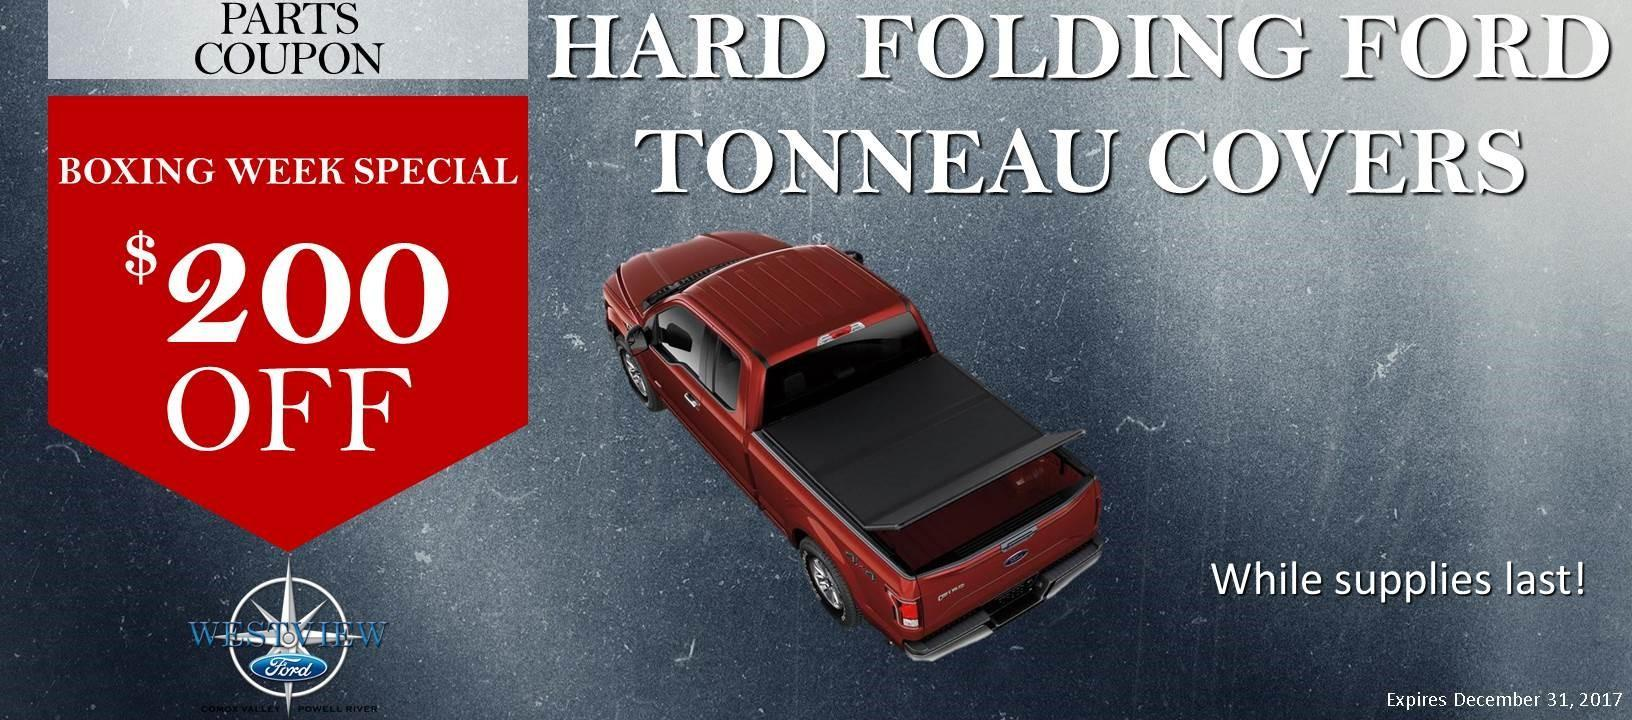 Tonneau Covers Boxing Week Special $200 Off